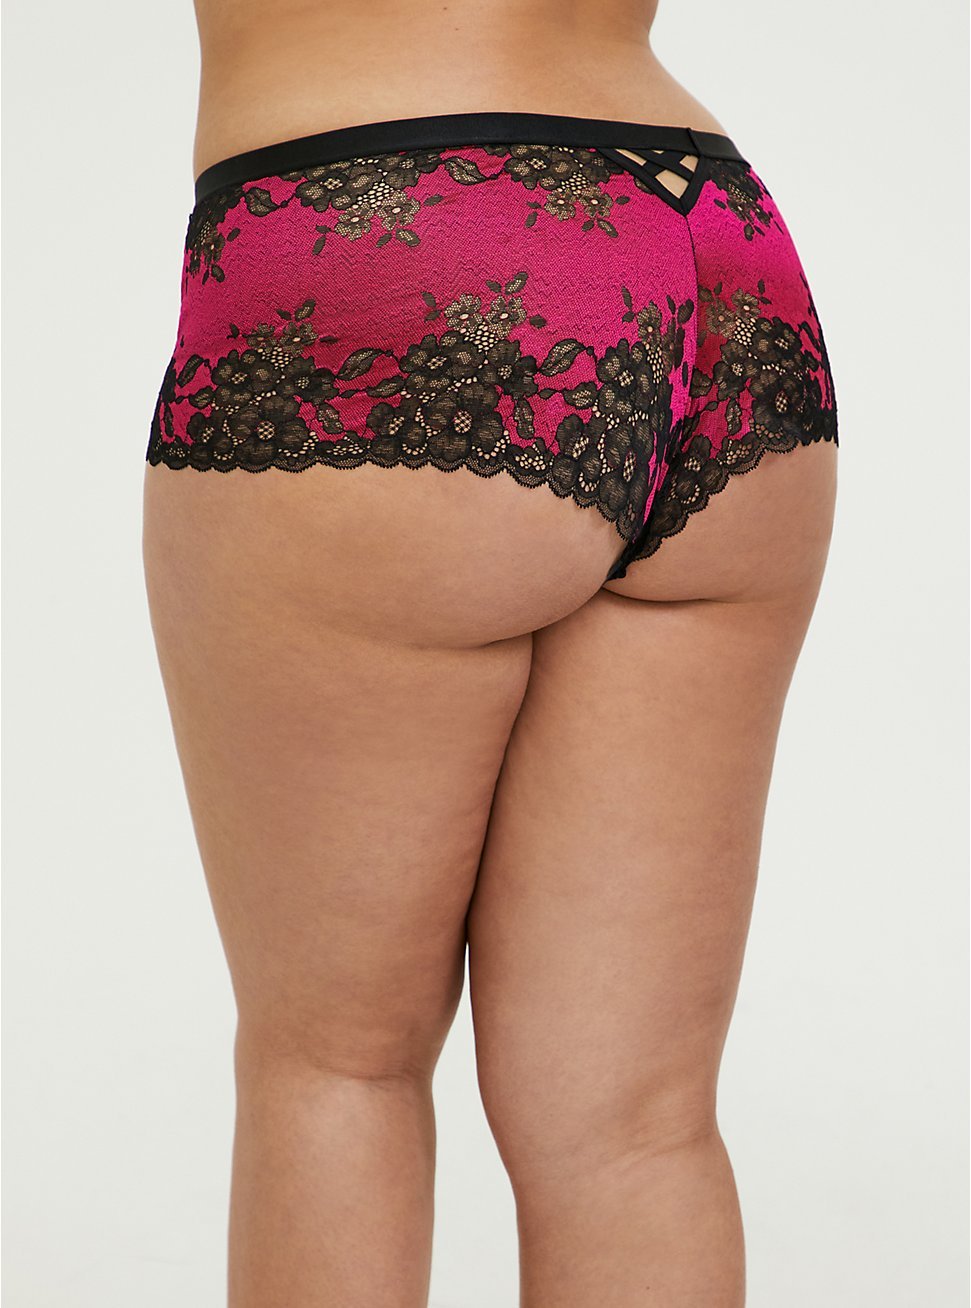 Hot Pink & Black Lace Lattice Cheeky Panty, SUPERSONIC, hi-res